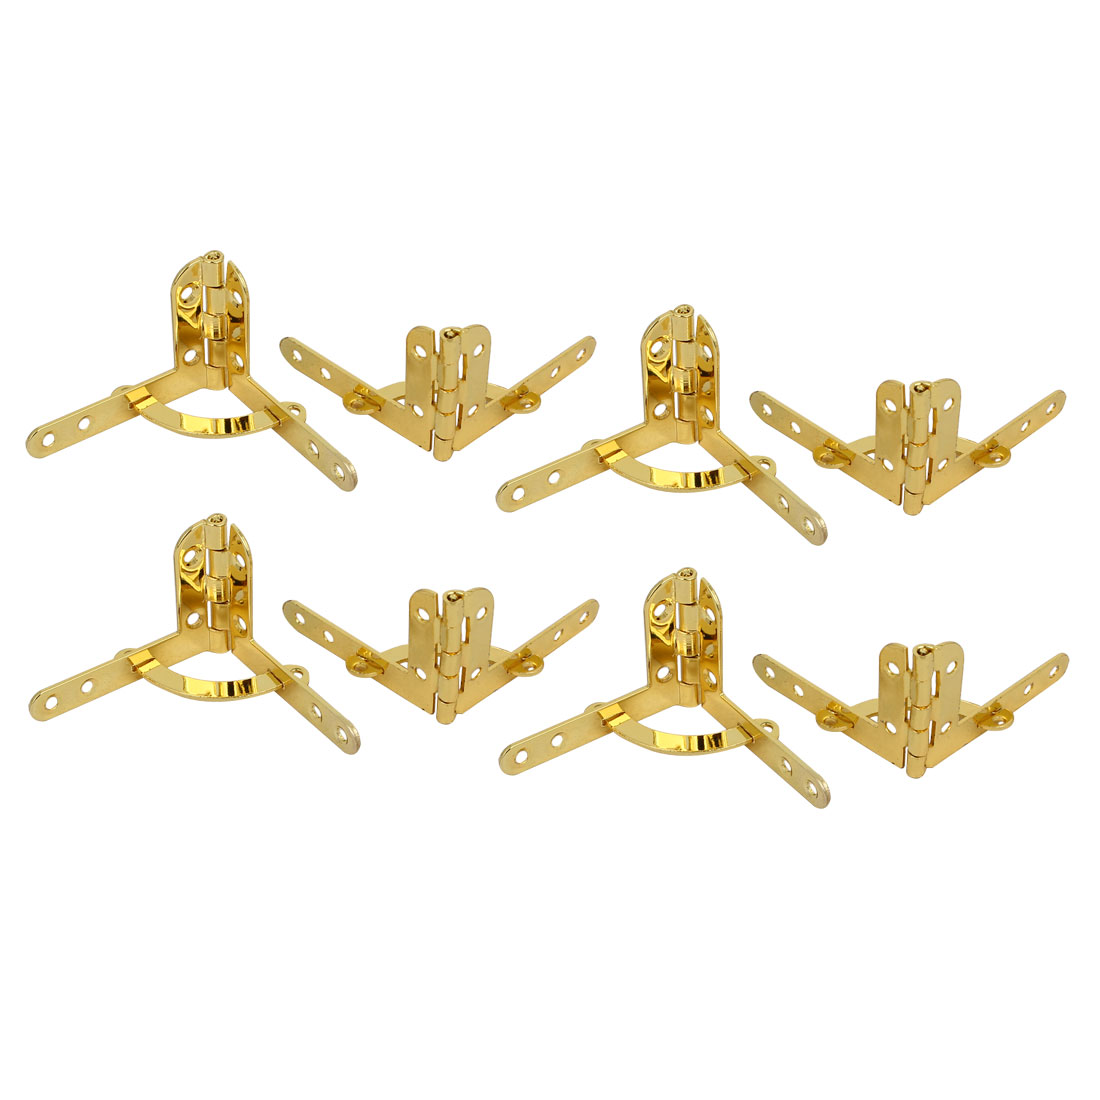 Jewelry Wine Box Wooden Case 90 Degree Support Spring Hinge Gold Tone 8pcs